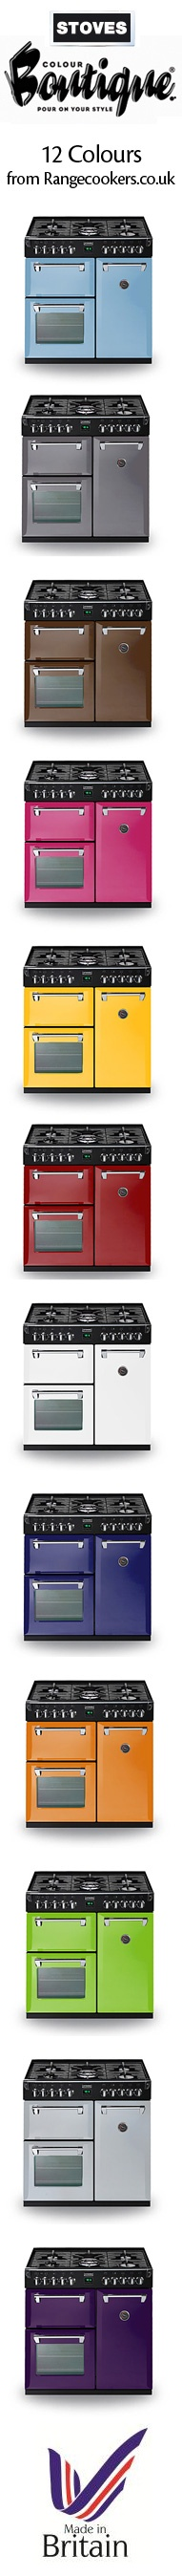 With Stoves Colour Boutique You Can Specify One Of Twelve Inspiring Shades Which Will Easily Match Small Kitchen Appliancessmall